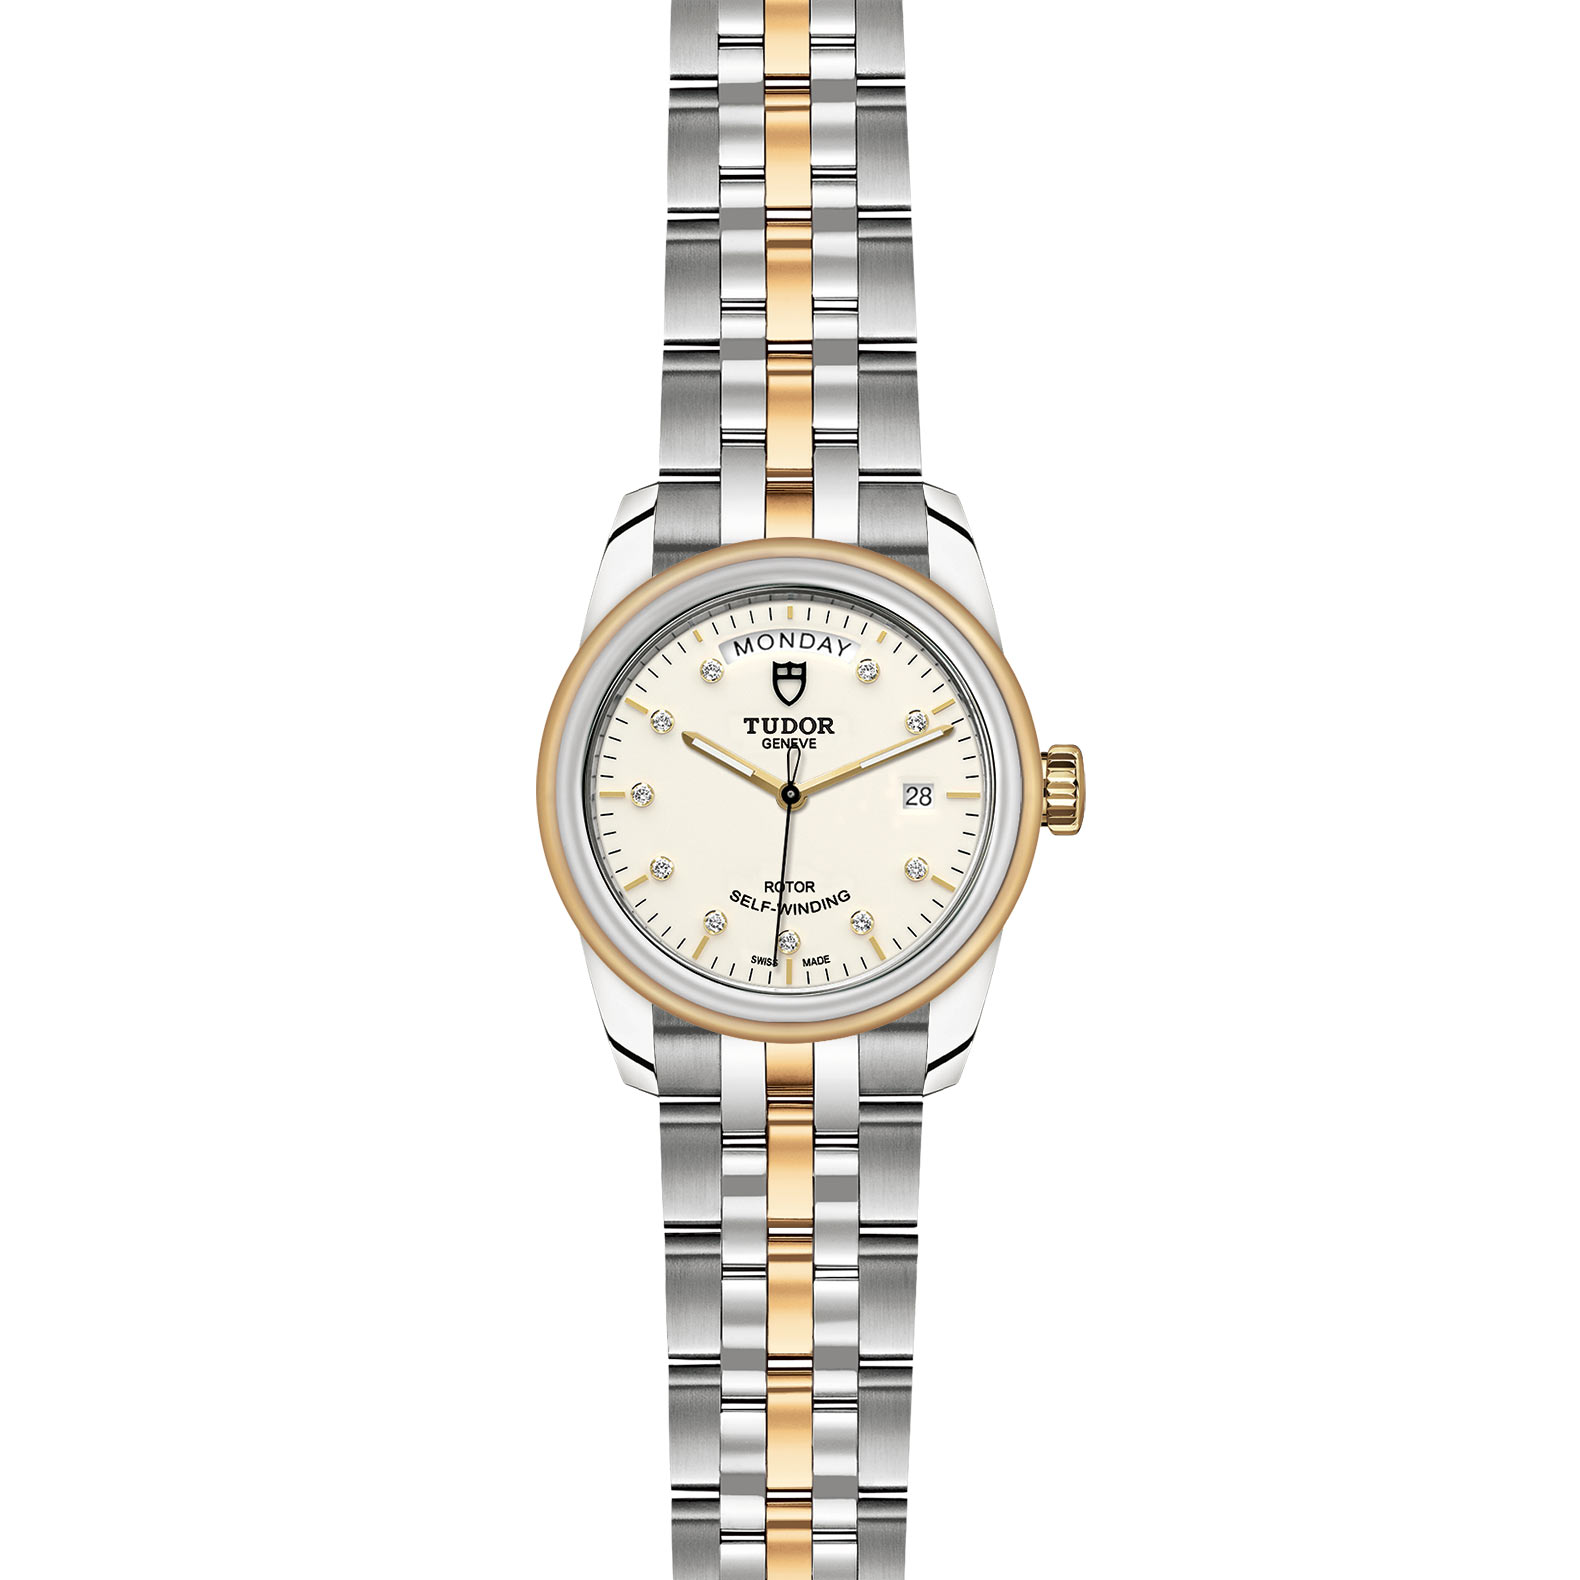 TUDOR Glamour Date Day M56003 0113 Frontfacing